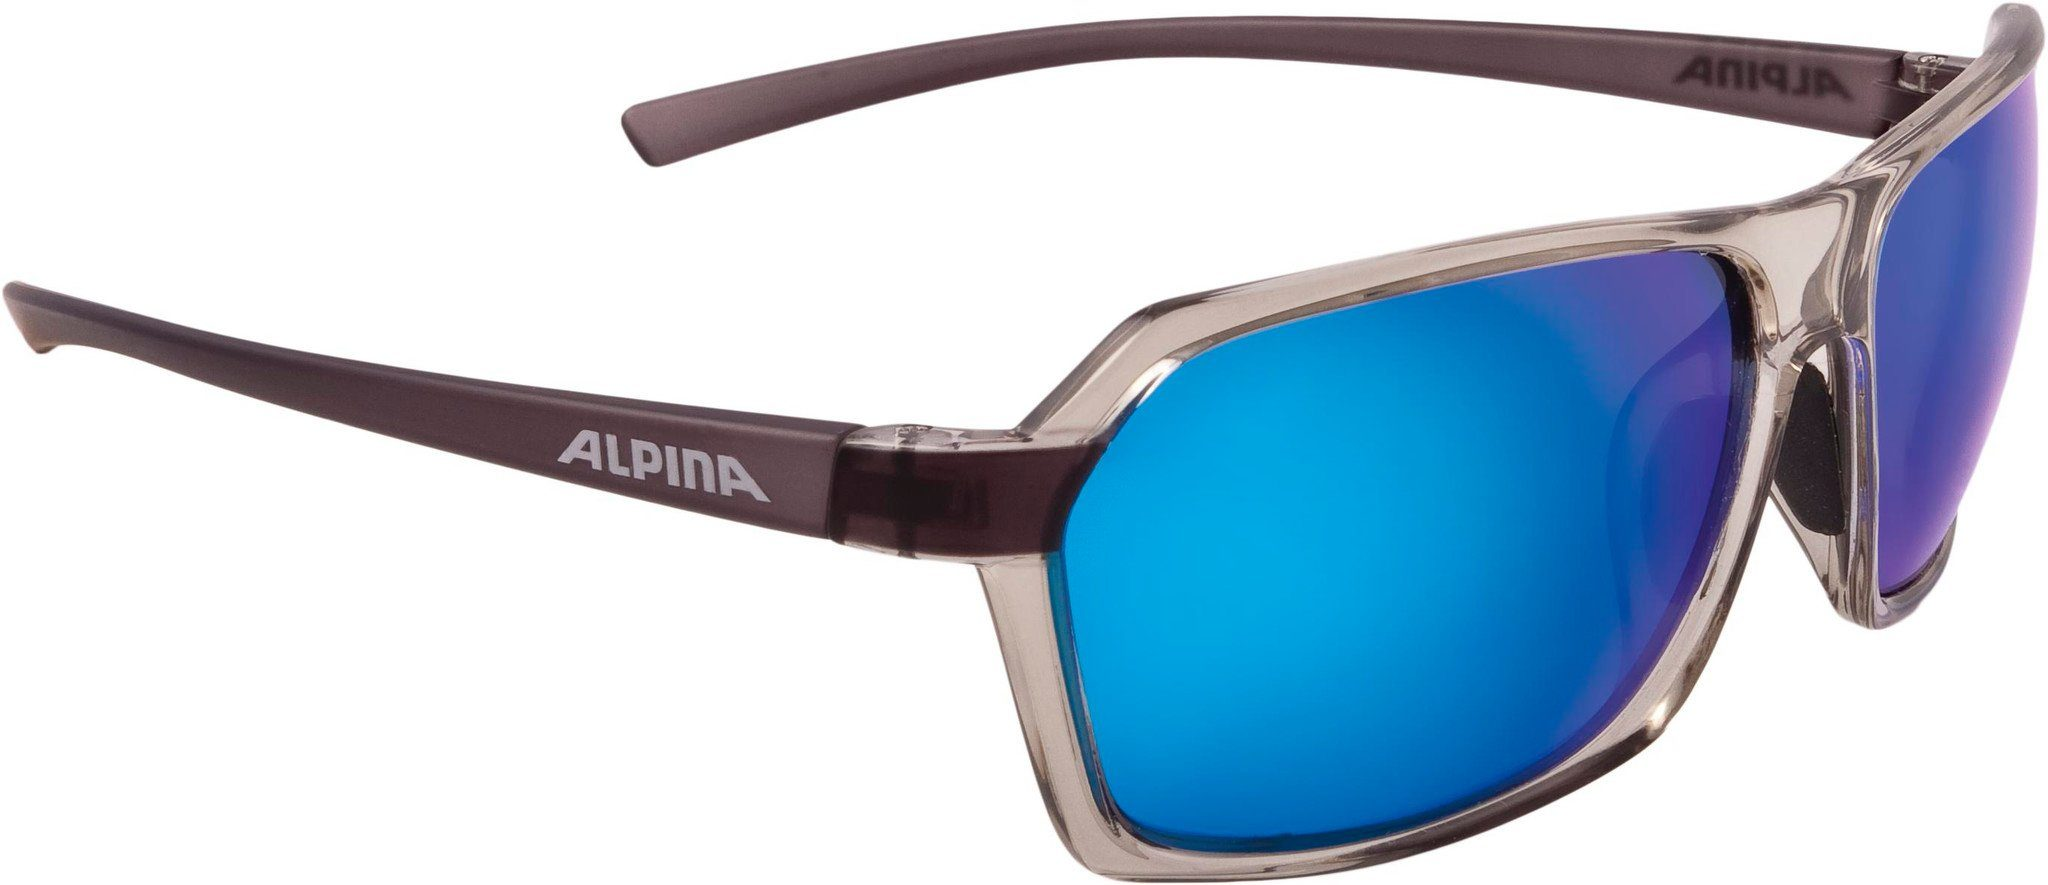 Alpina Sportbrille »Finety P Glasses«